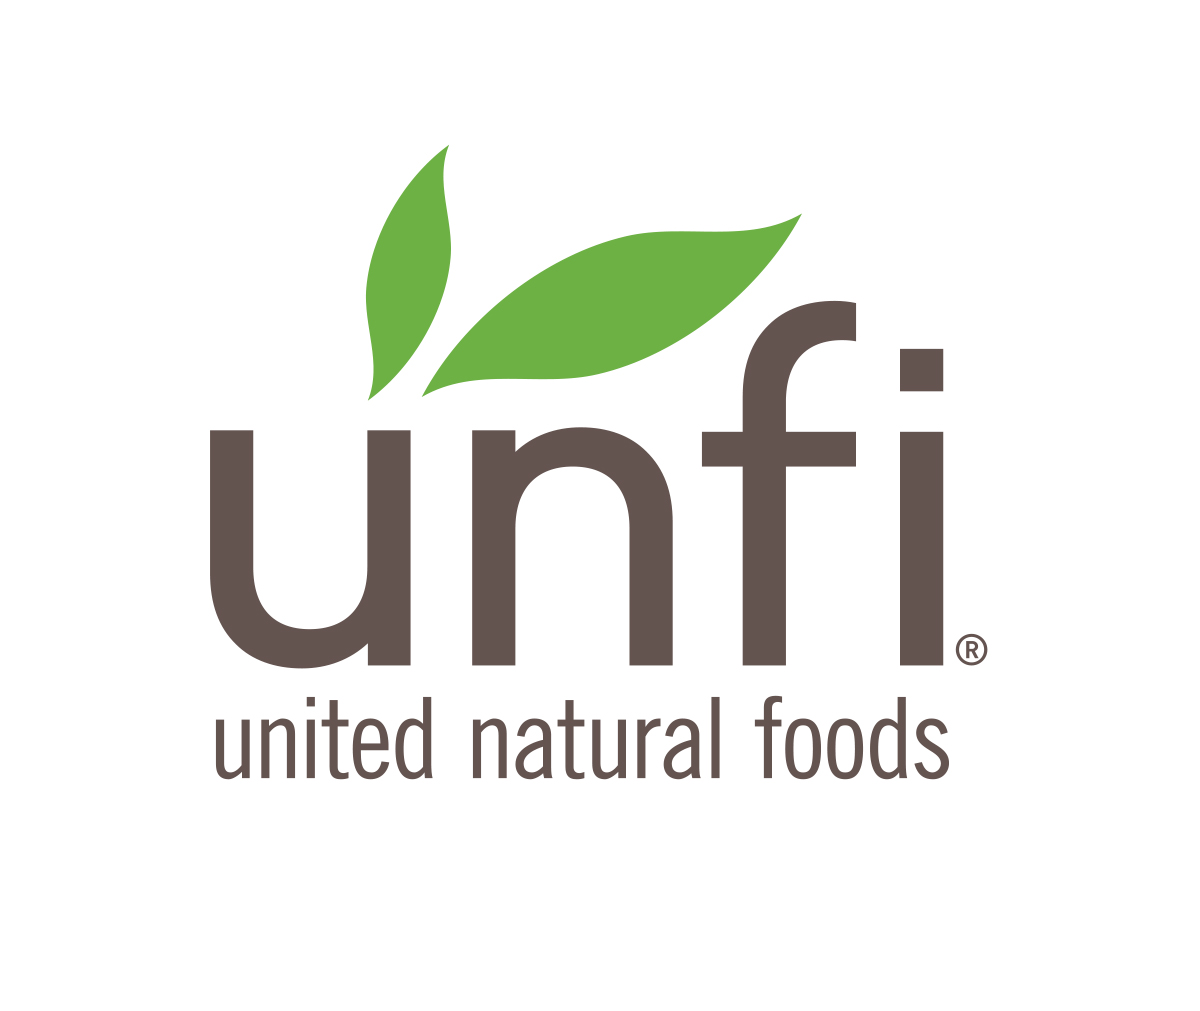 unfi online catalog UNFI nets $30.5M in 2018 Q1 - Providence Business News